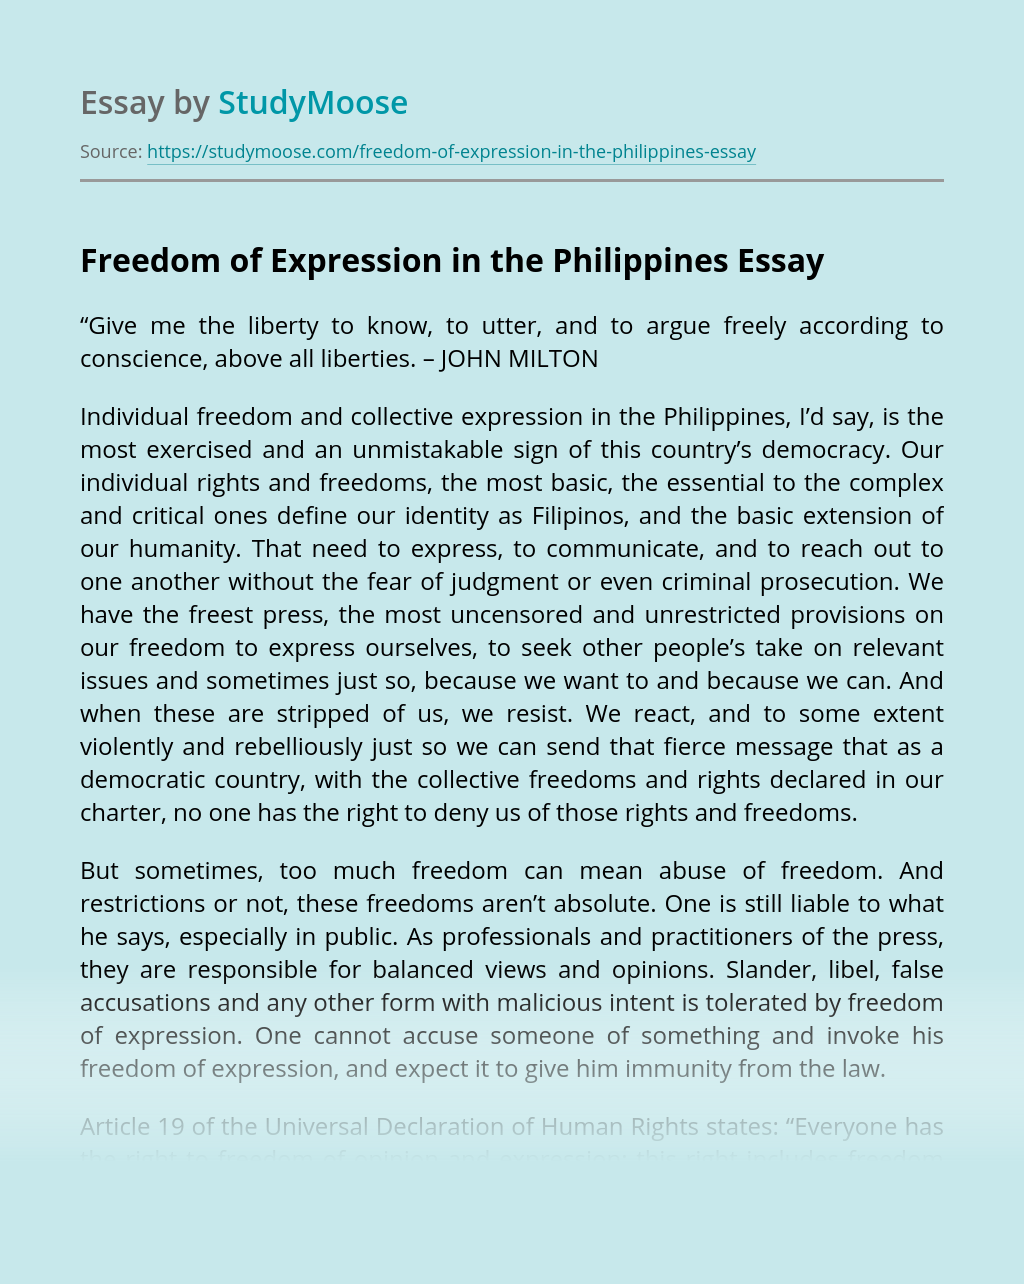 Freedom of Expression in the Philippines